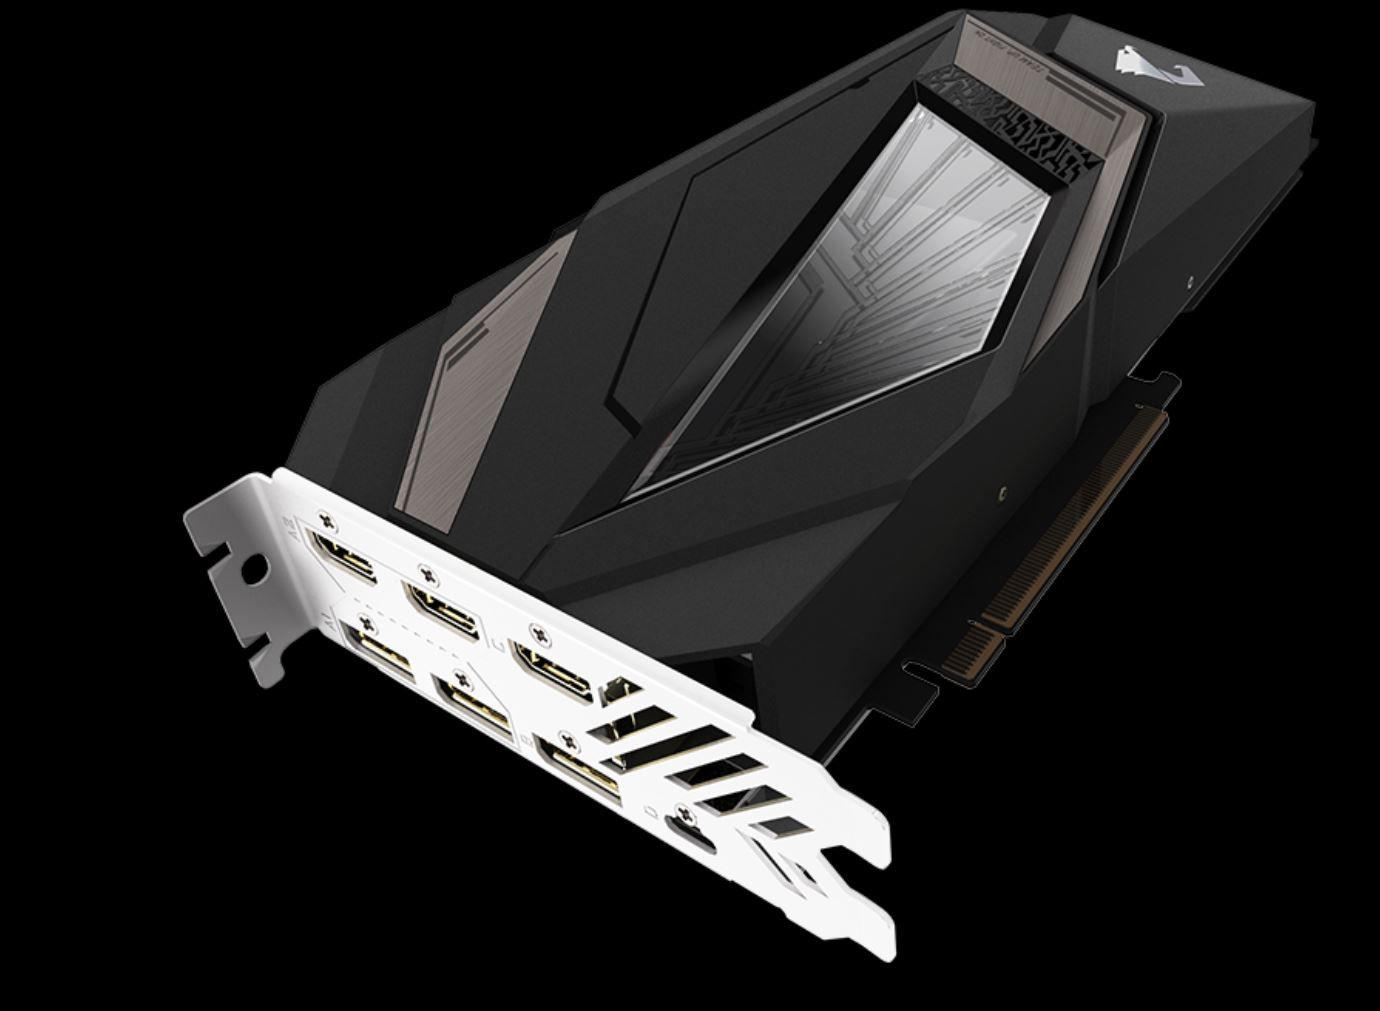 GIGABYTE推出Hybrid AIO cooling GeForce RTX 2080 AORUS WaterForce顯示卡 - XFastest - GIGABYTE-RTX2080-Aorus-WaterForce-AIO-3.jpg